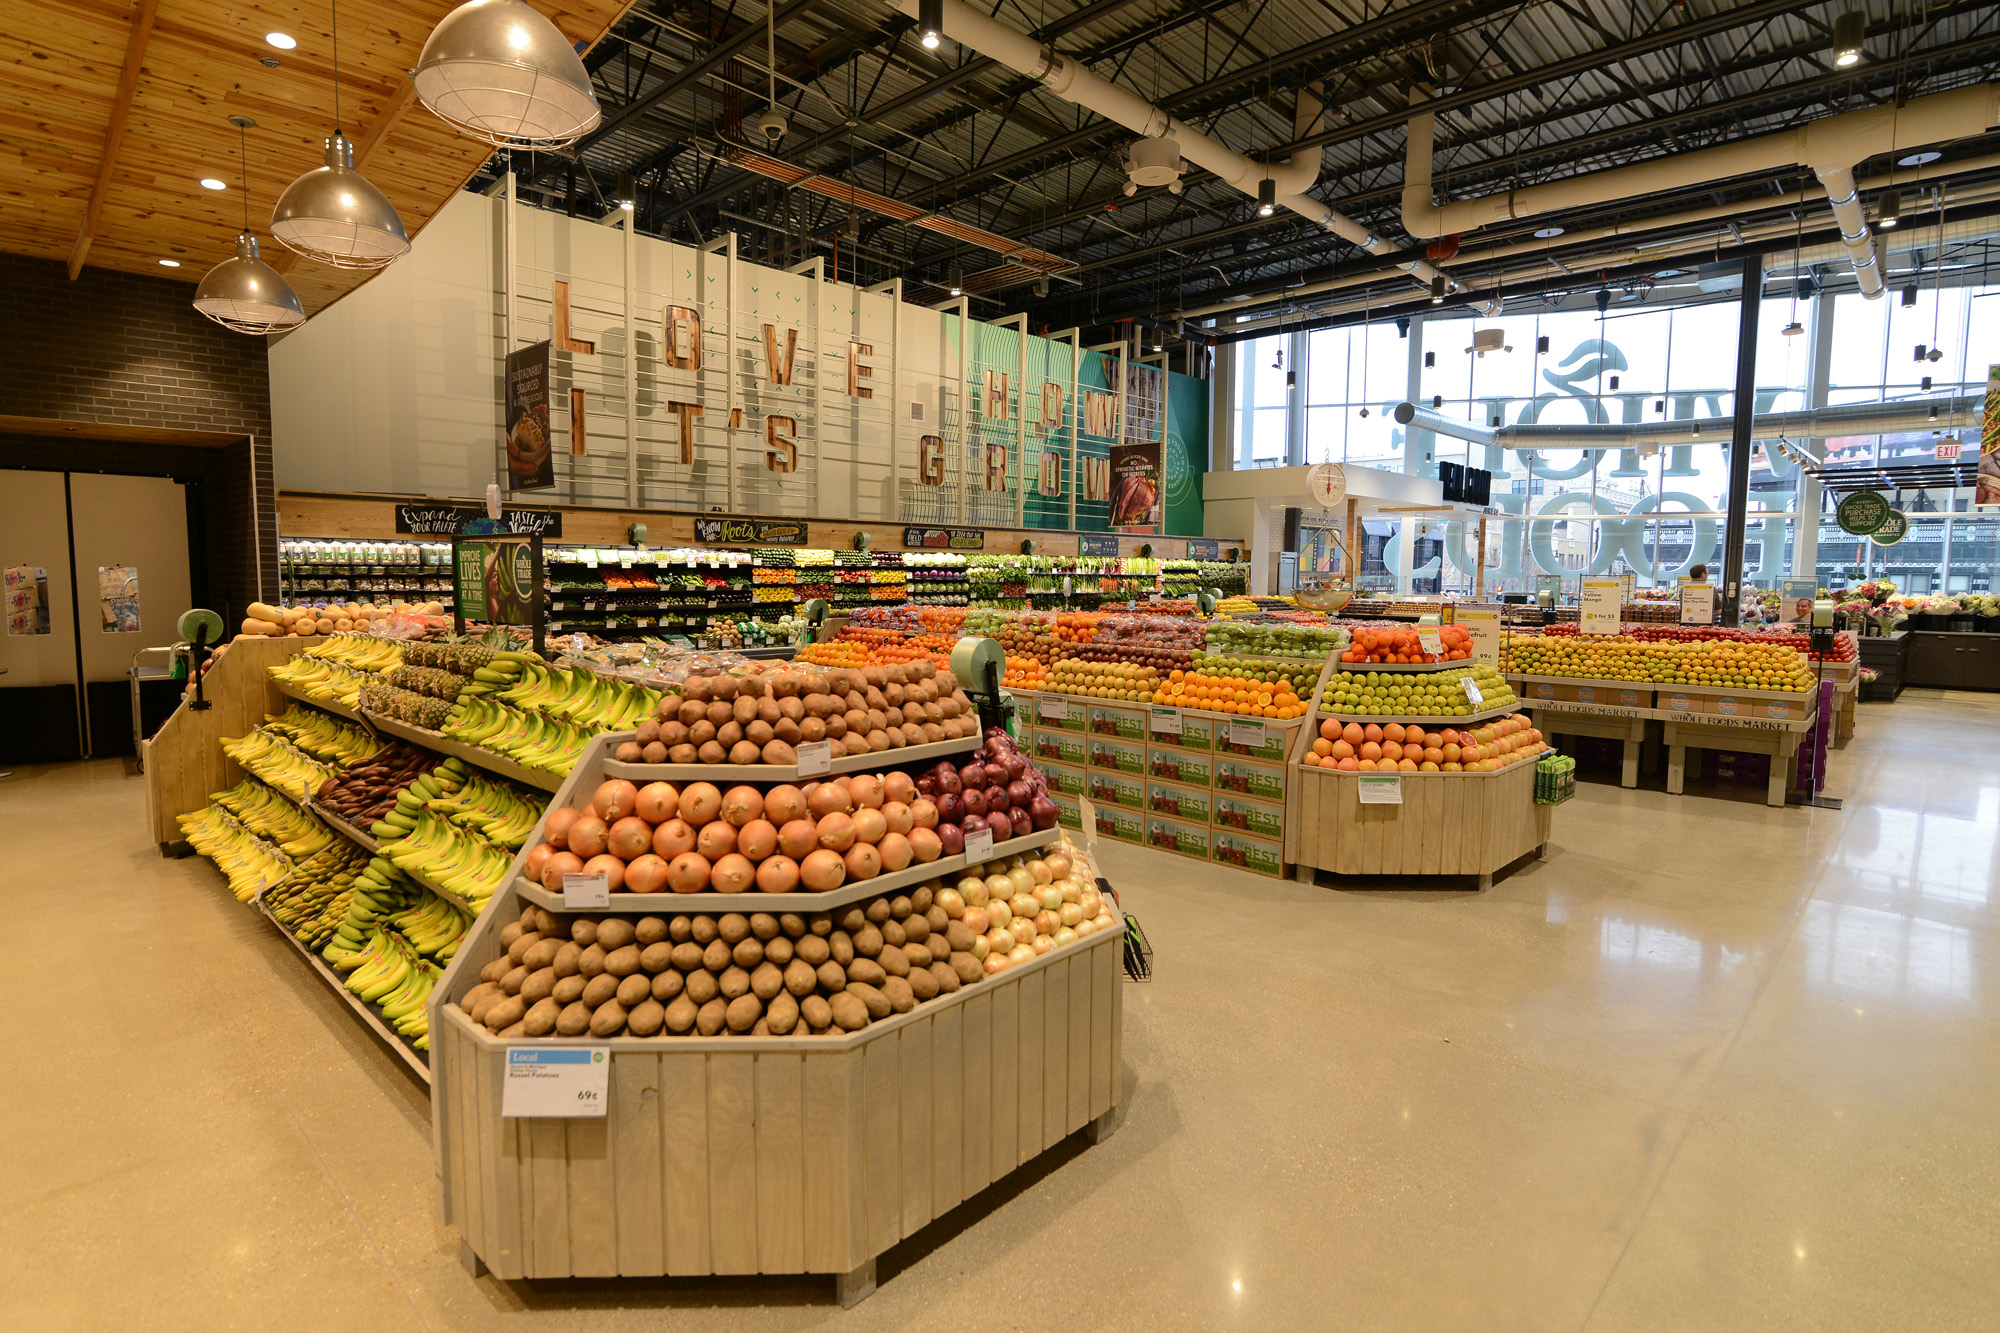 If you're not familiar with Whole Foods, they're an award-winning national grocer with solid ethos and product focus on natural and organic foods. The stores are an experience, each one unique–any chance we have to visit one, we take it!